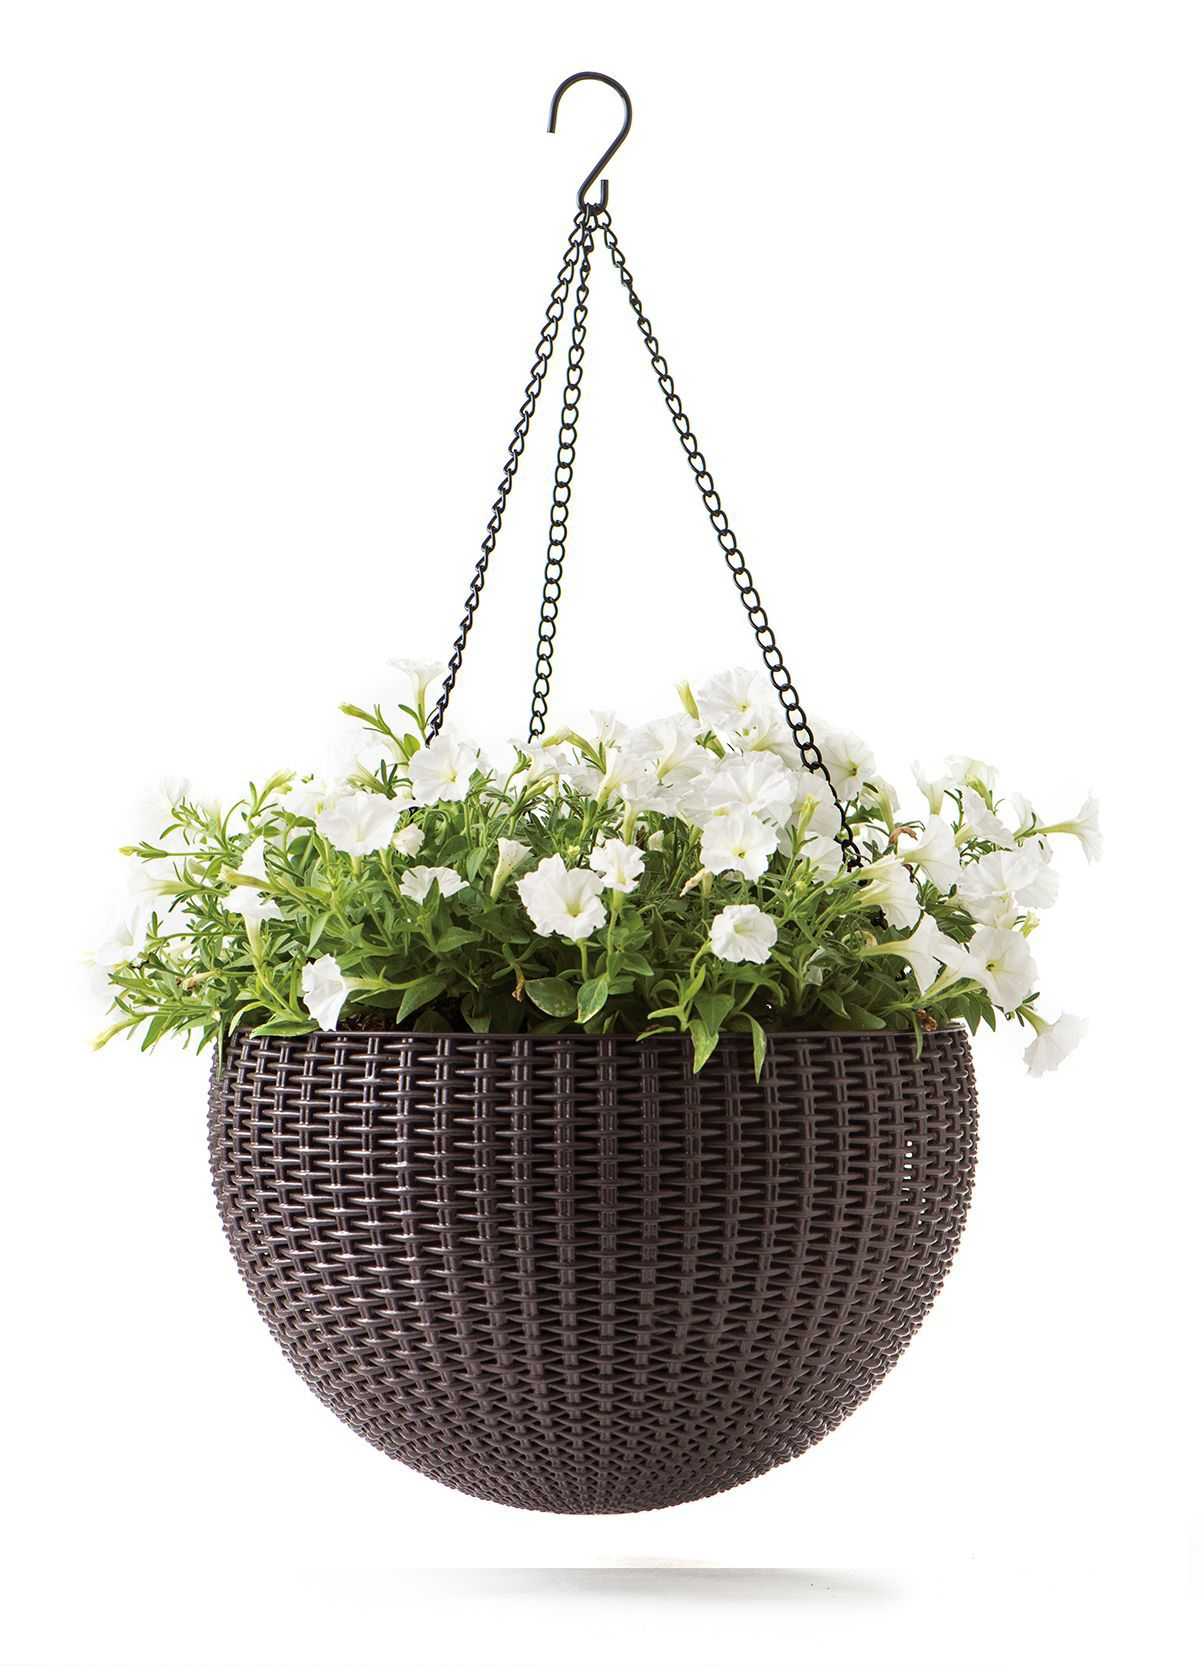 Keter Rattan Effect Anthracite Hanging Planter 355 6 Mm